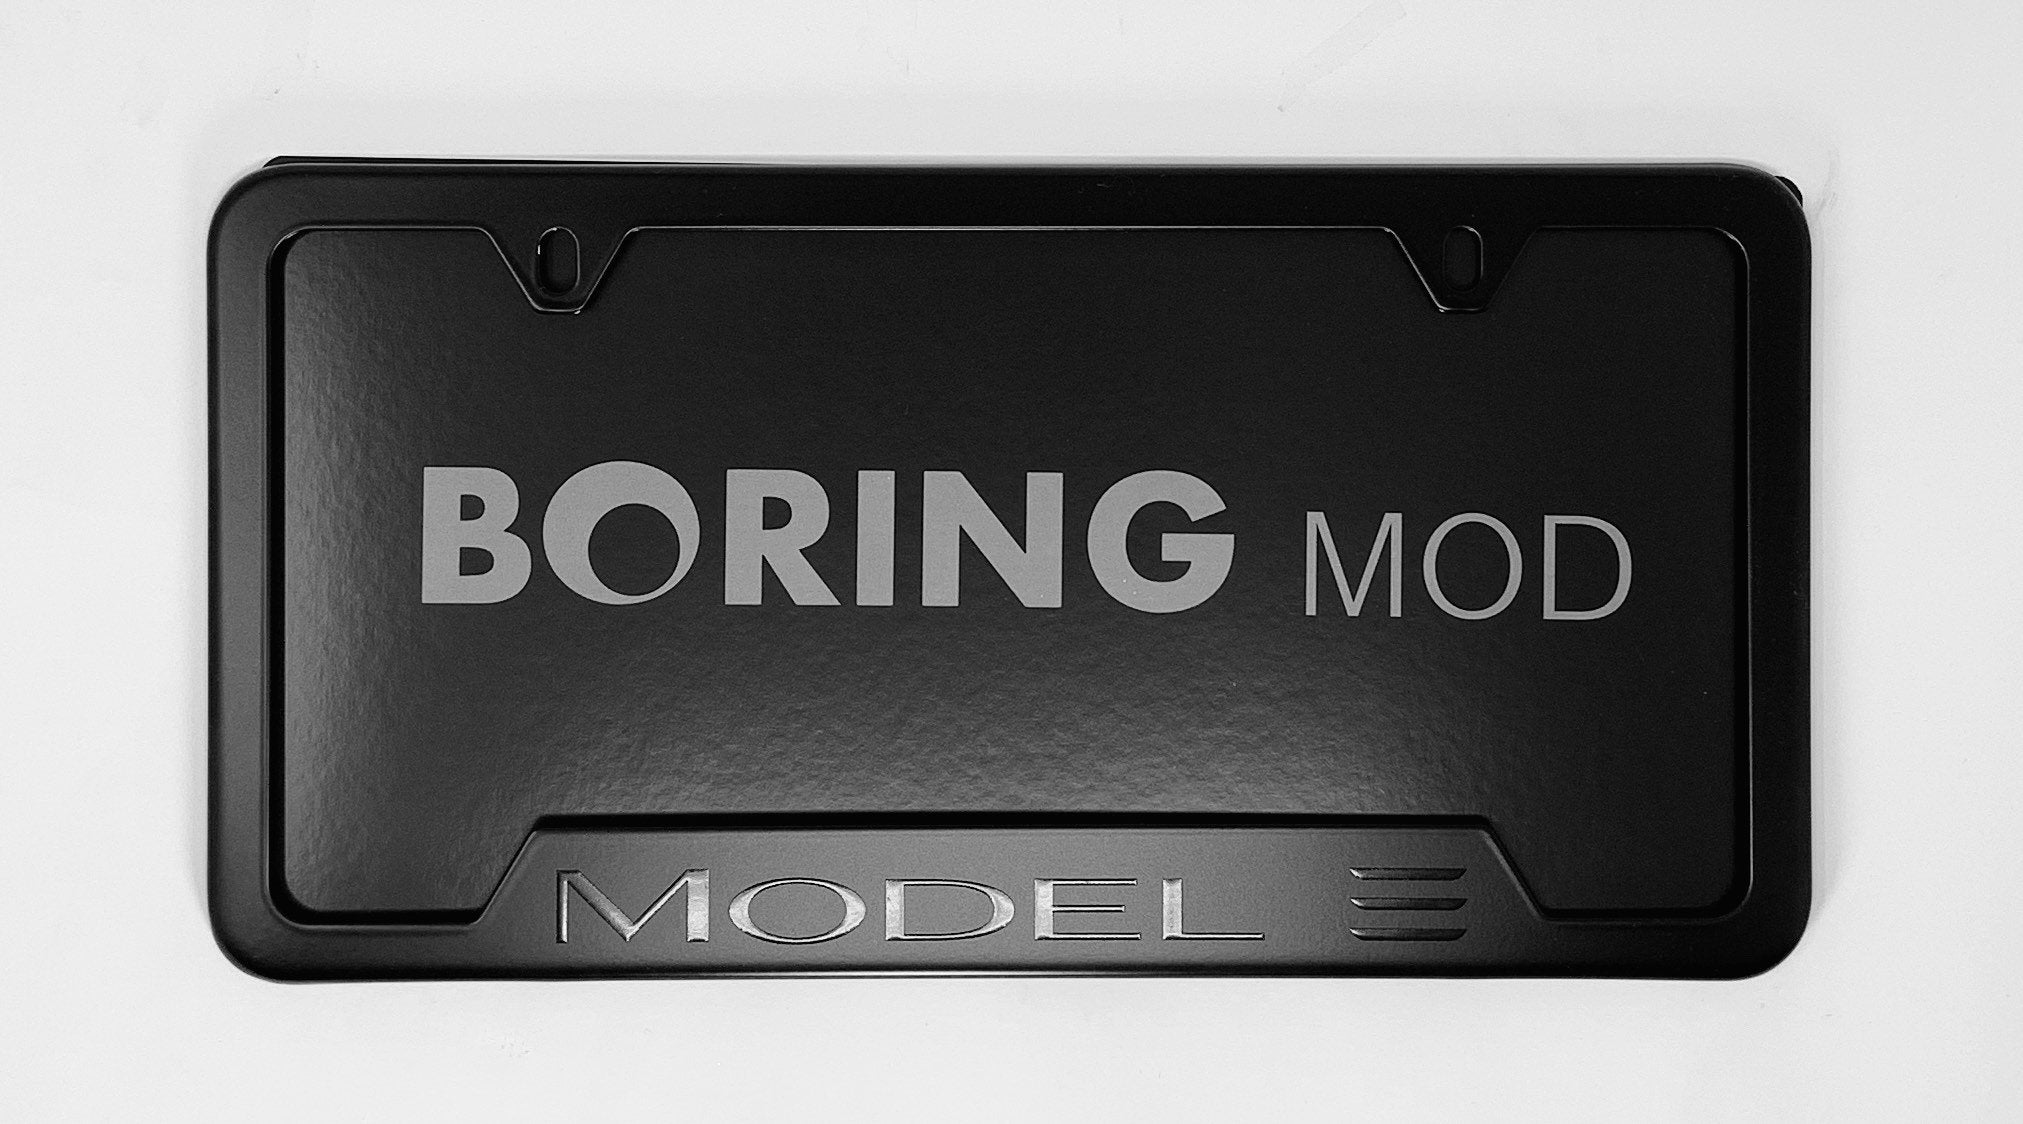 Tesla Black MODEL 3 /// on Black License Plate Frame,  printed, CUSTOM, Metal, No Stickers, BORINGmod, Free Returns, Chrome Delete